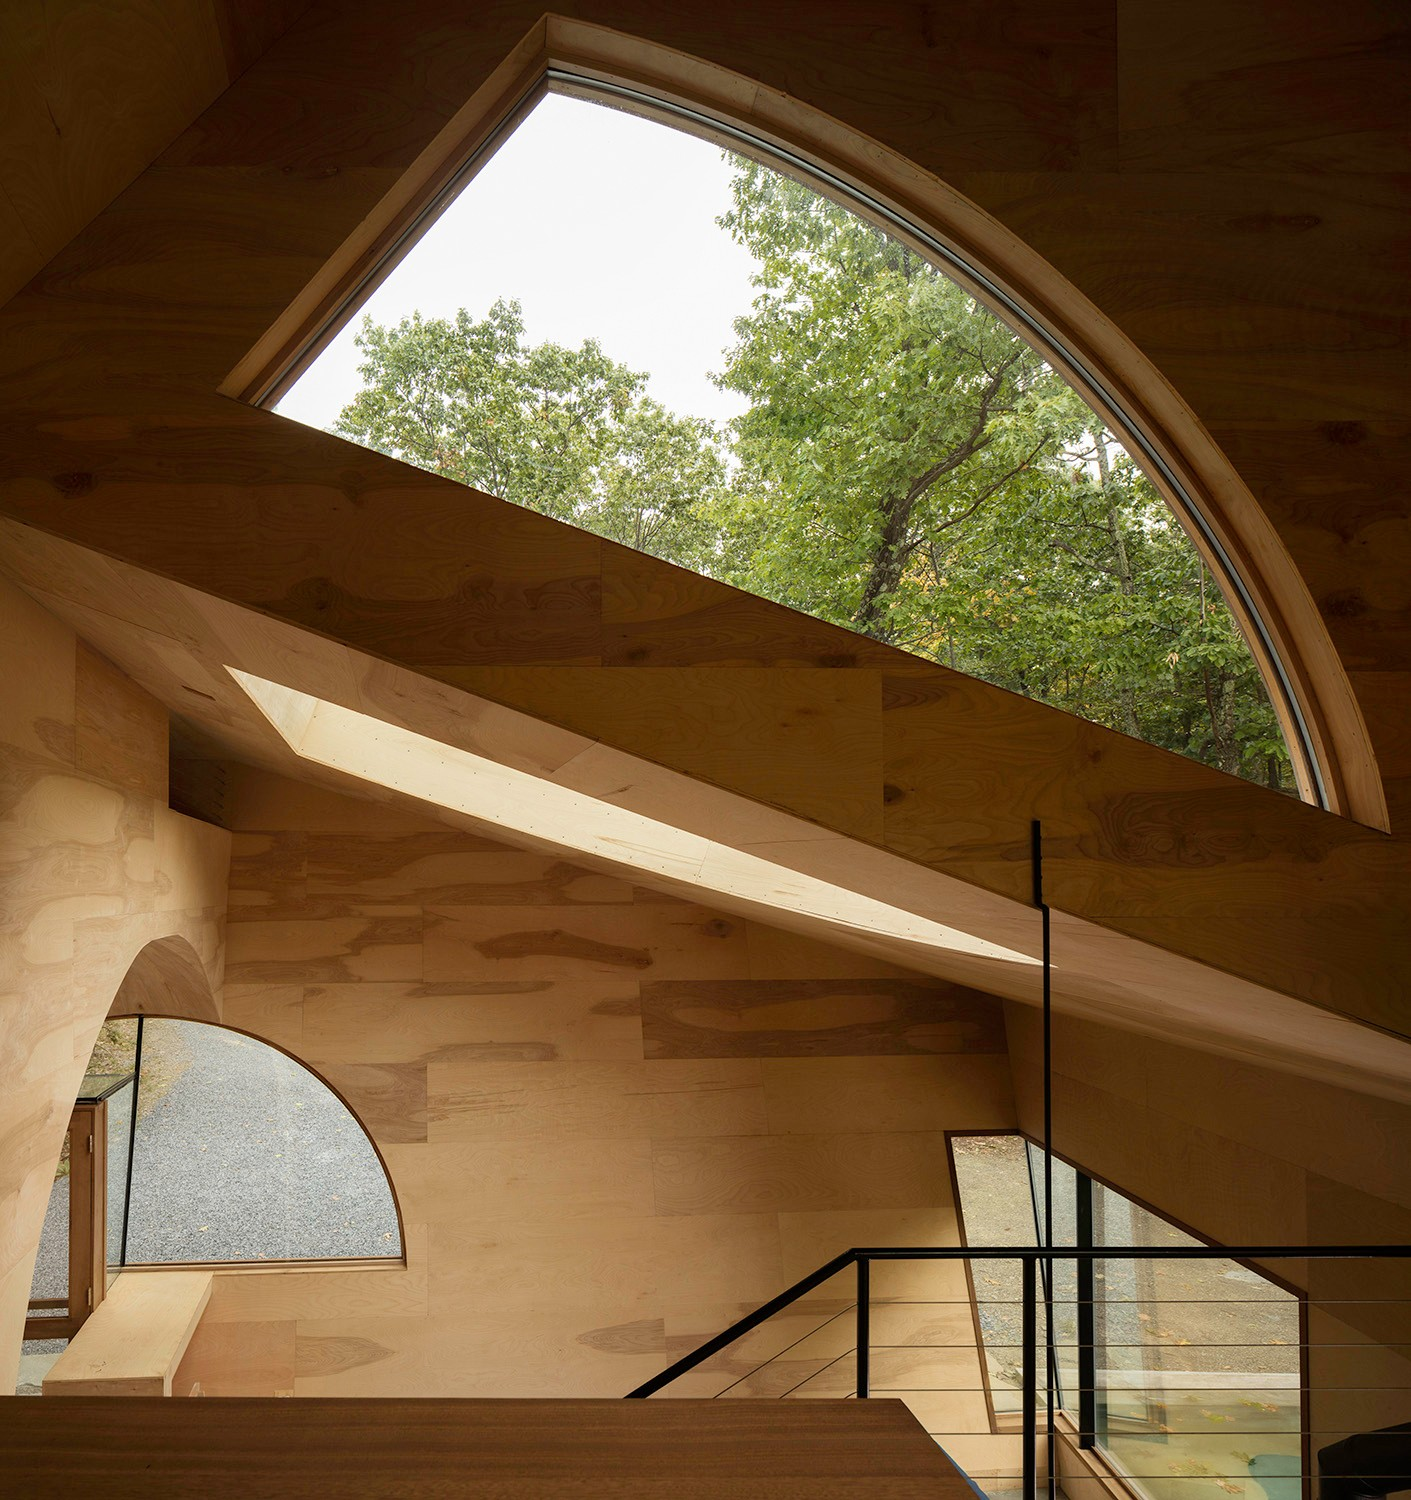 https://s3.us-east-2.amazonaws.com/steven-holl/uploads/projects/project-images/PaulWarchol_EOI_16-042-020A_WV.jpg